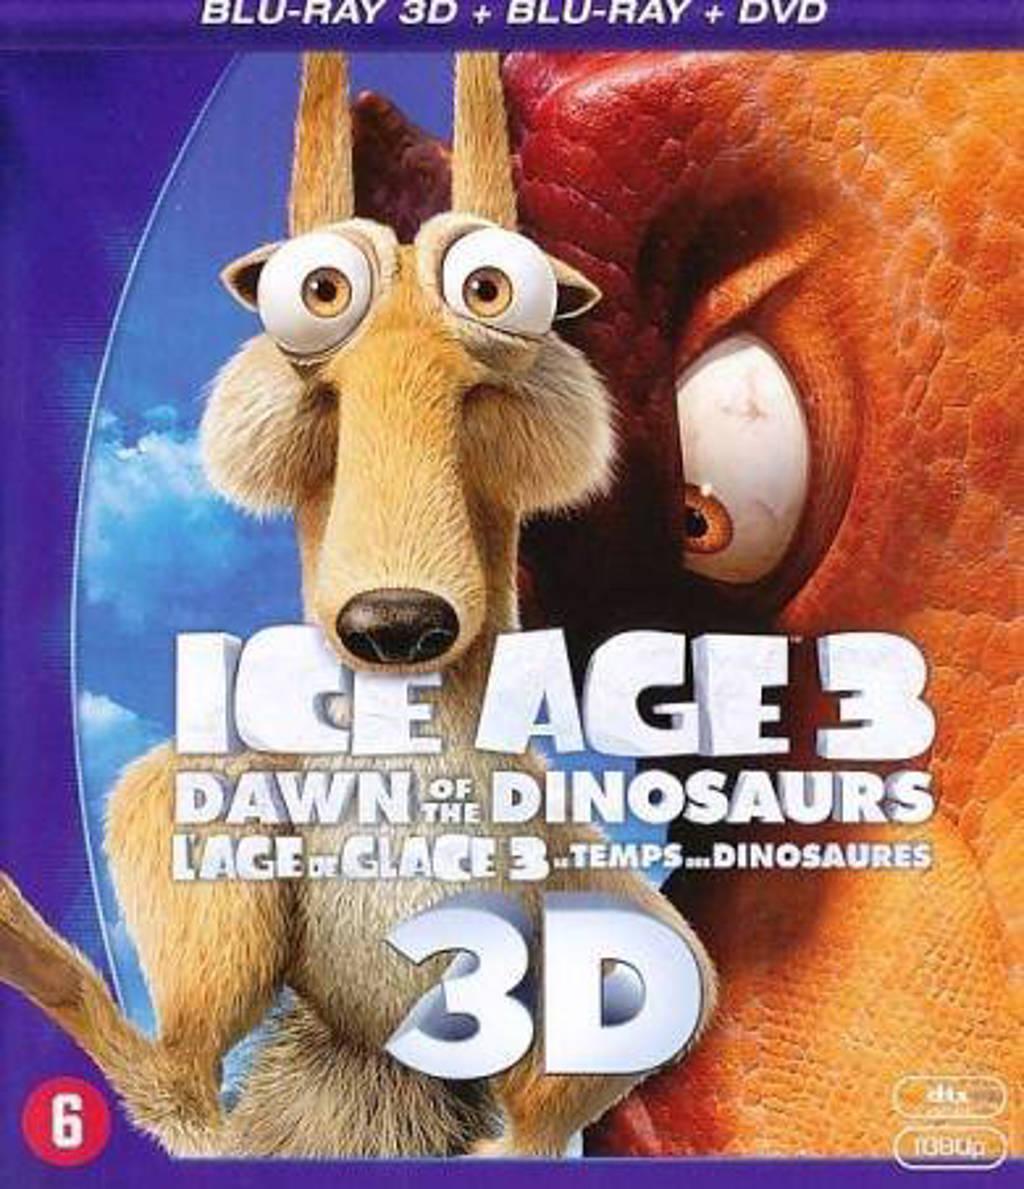 Ice age 3 (3D) pack (Blu-ray)